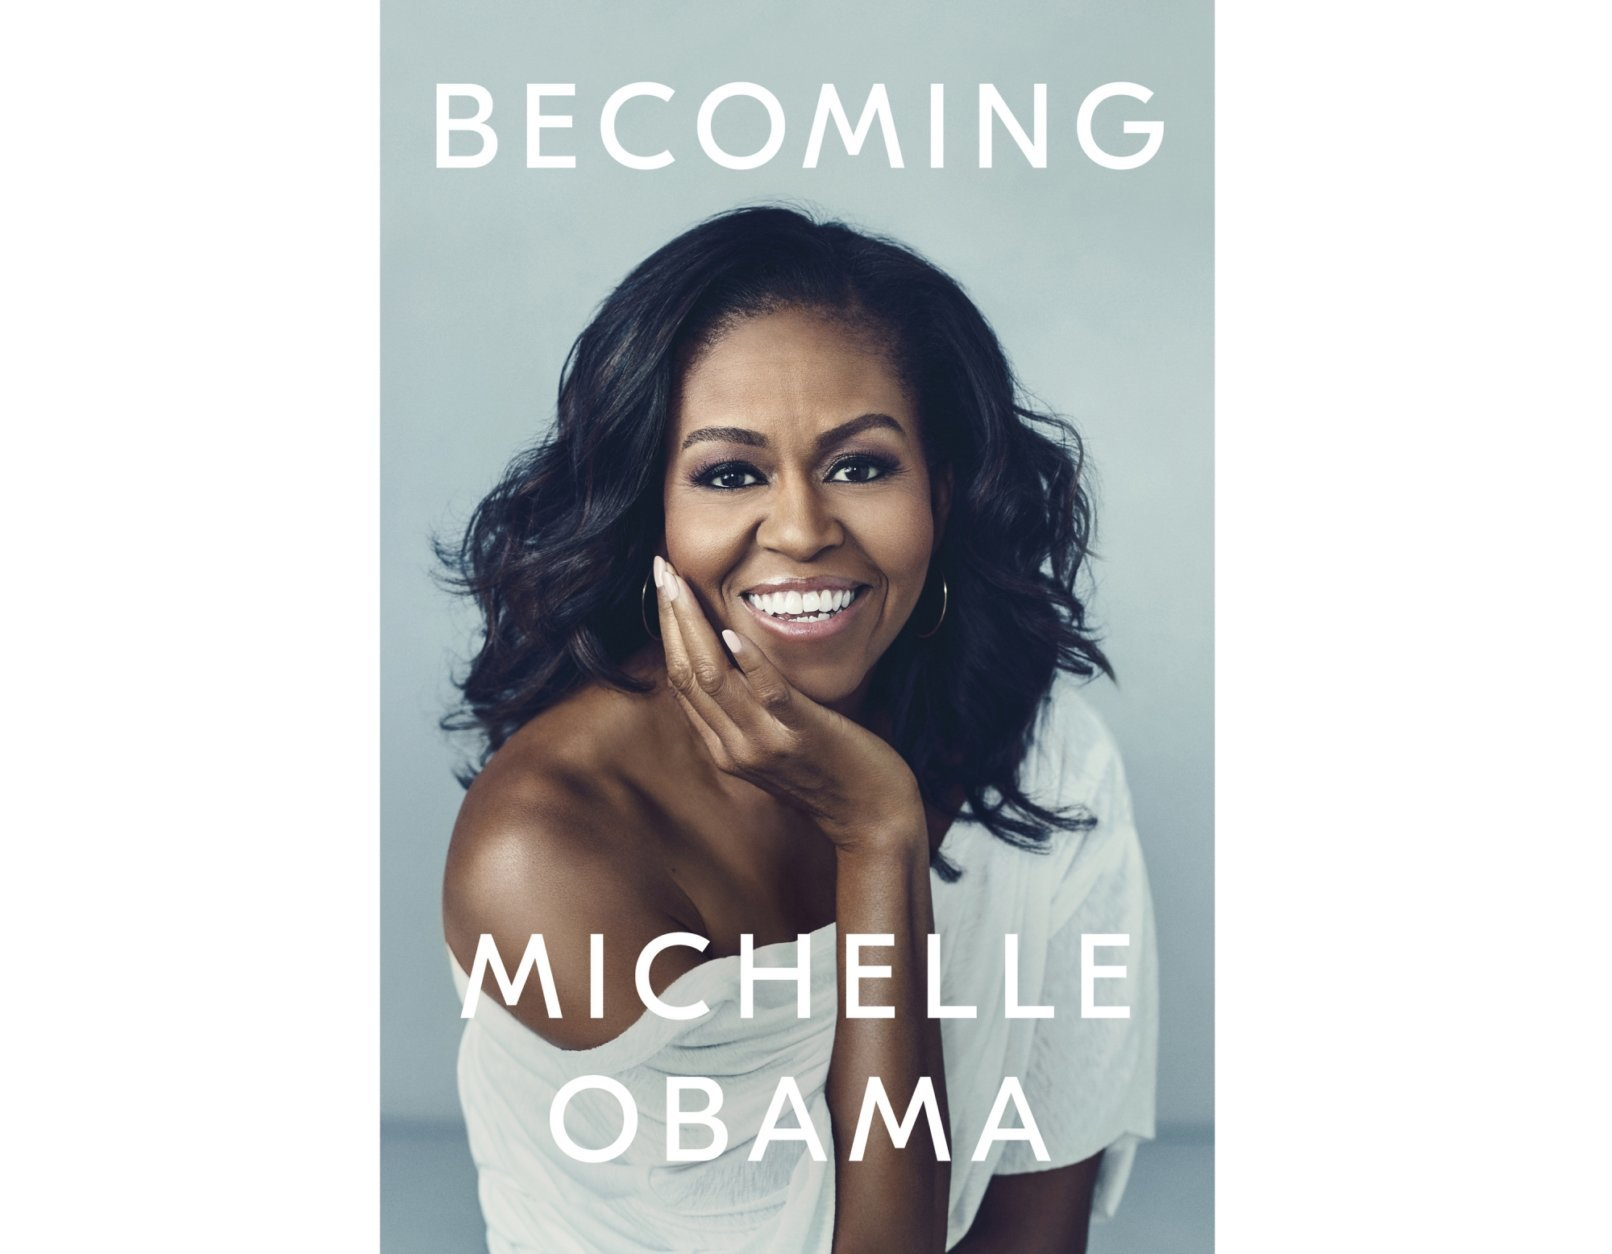 """This cover image released by Crown shows """"Becoming,"""" by Michelle Obama. Crown Publishing told The Associated Press on Friday that the former first lady's memoir had sold more than 725,000 copies after its first day of publication. """"Becoming"""" came out Tuesday, the same day Obama launched a national book tour. (Crown via AP)"""